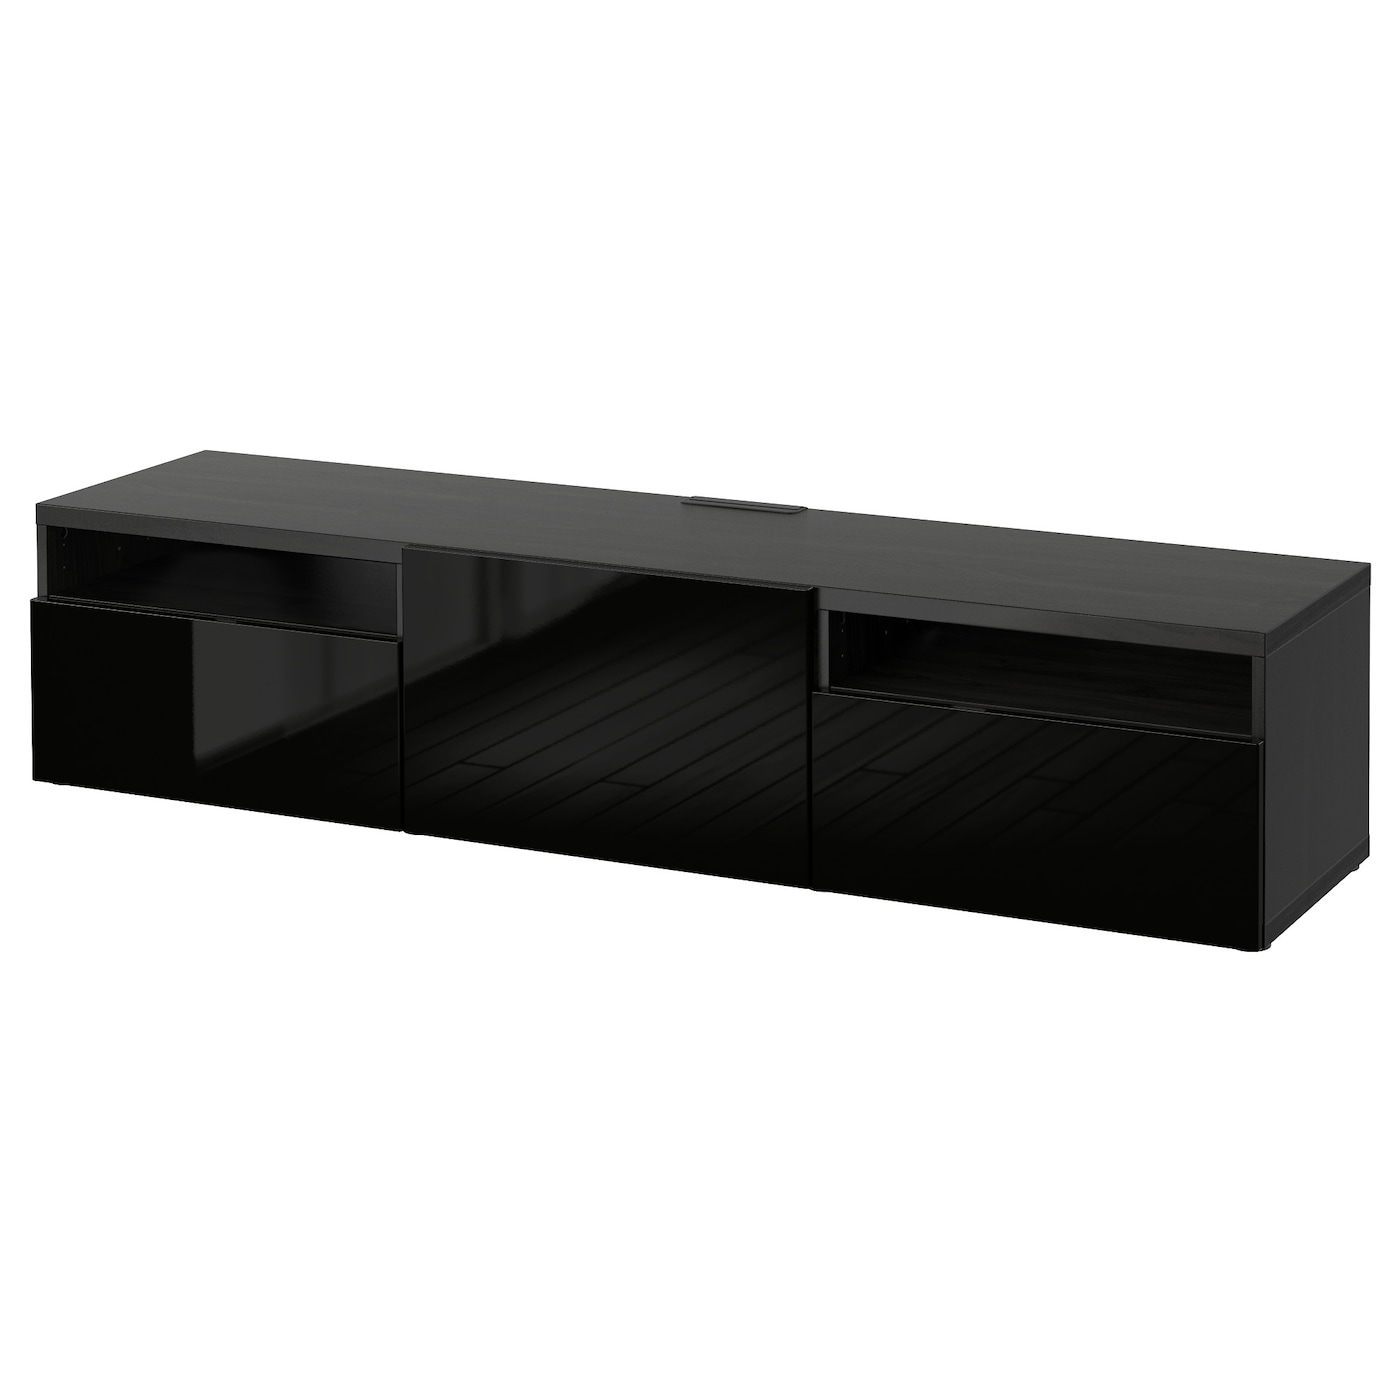 tv stand ikea black. ikea bestÅ tv bench tv stand ikea black k